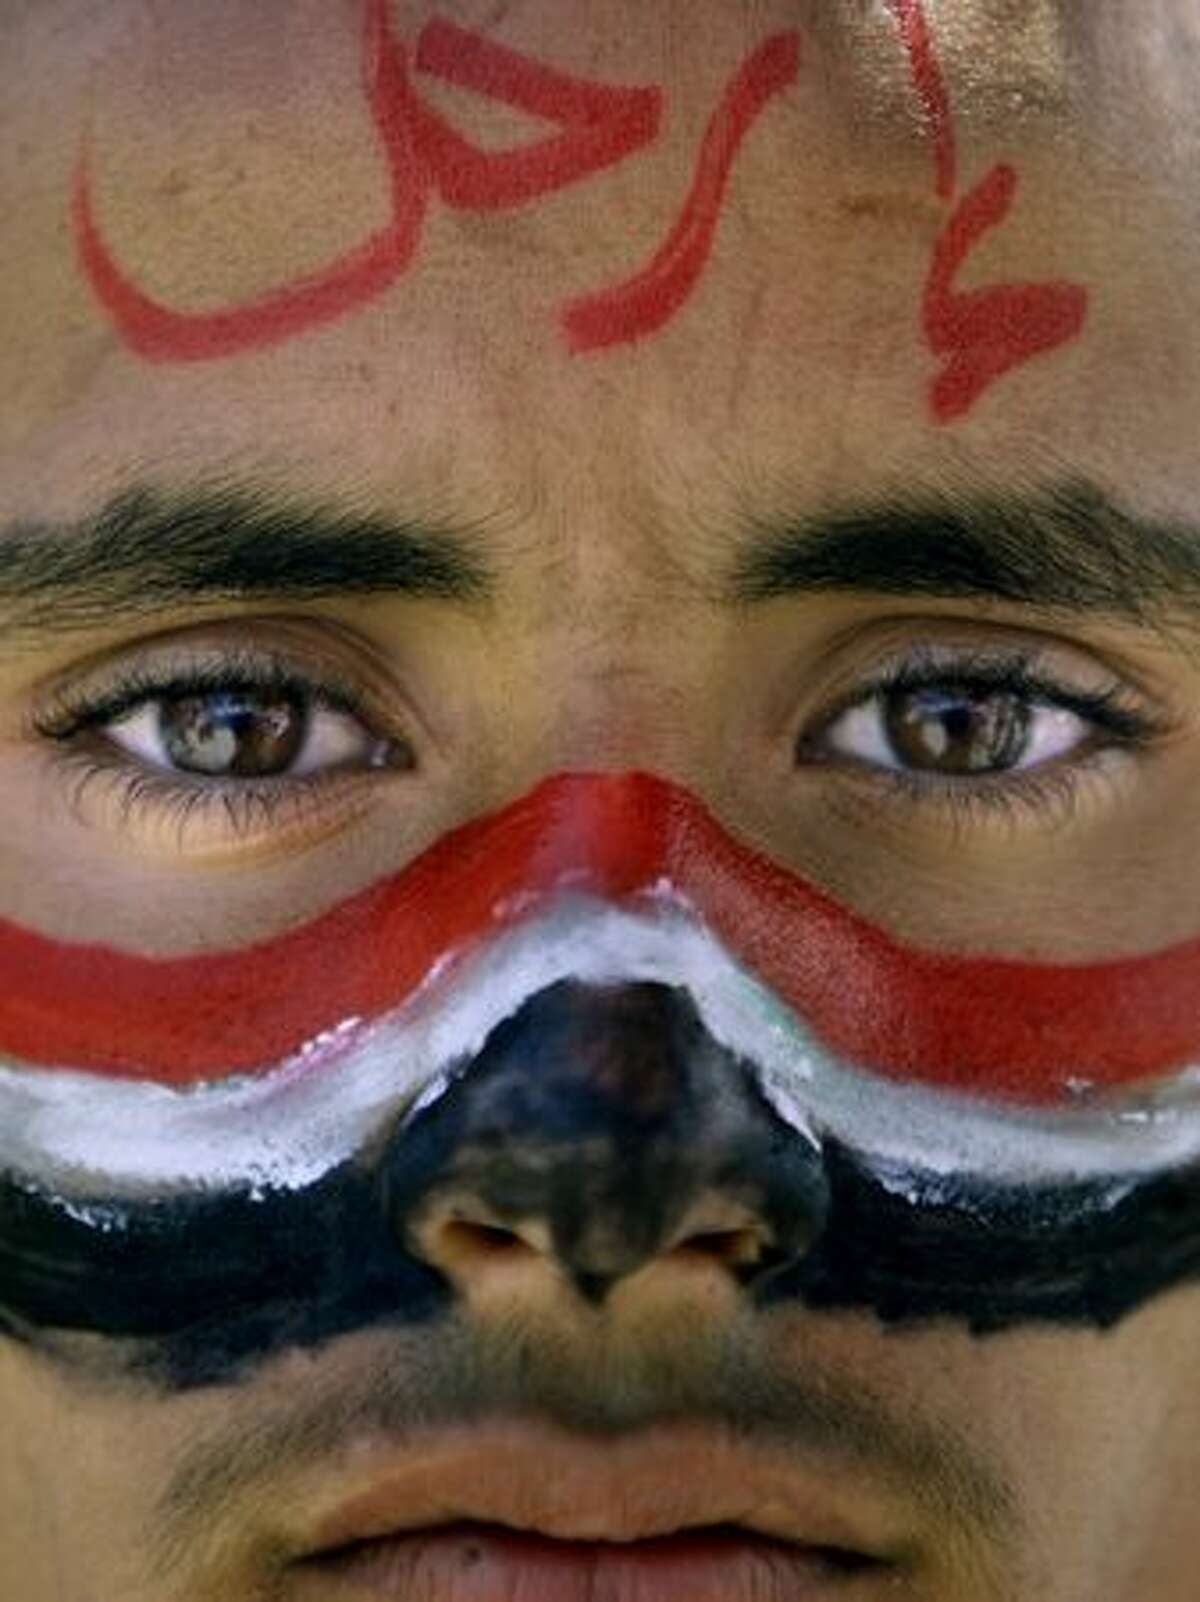 An anti-government protester with the colors of his national flag painted on his face during a demonstration demanding the resignation of Yemeni President Ali Abdullah Saleh, in Sanaa,Yemen, Thursday, March 24, 2011. His face reads,